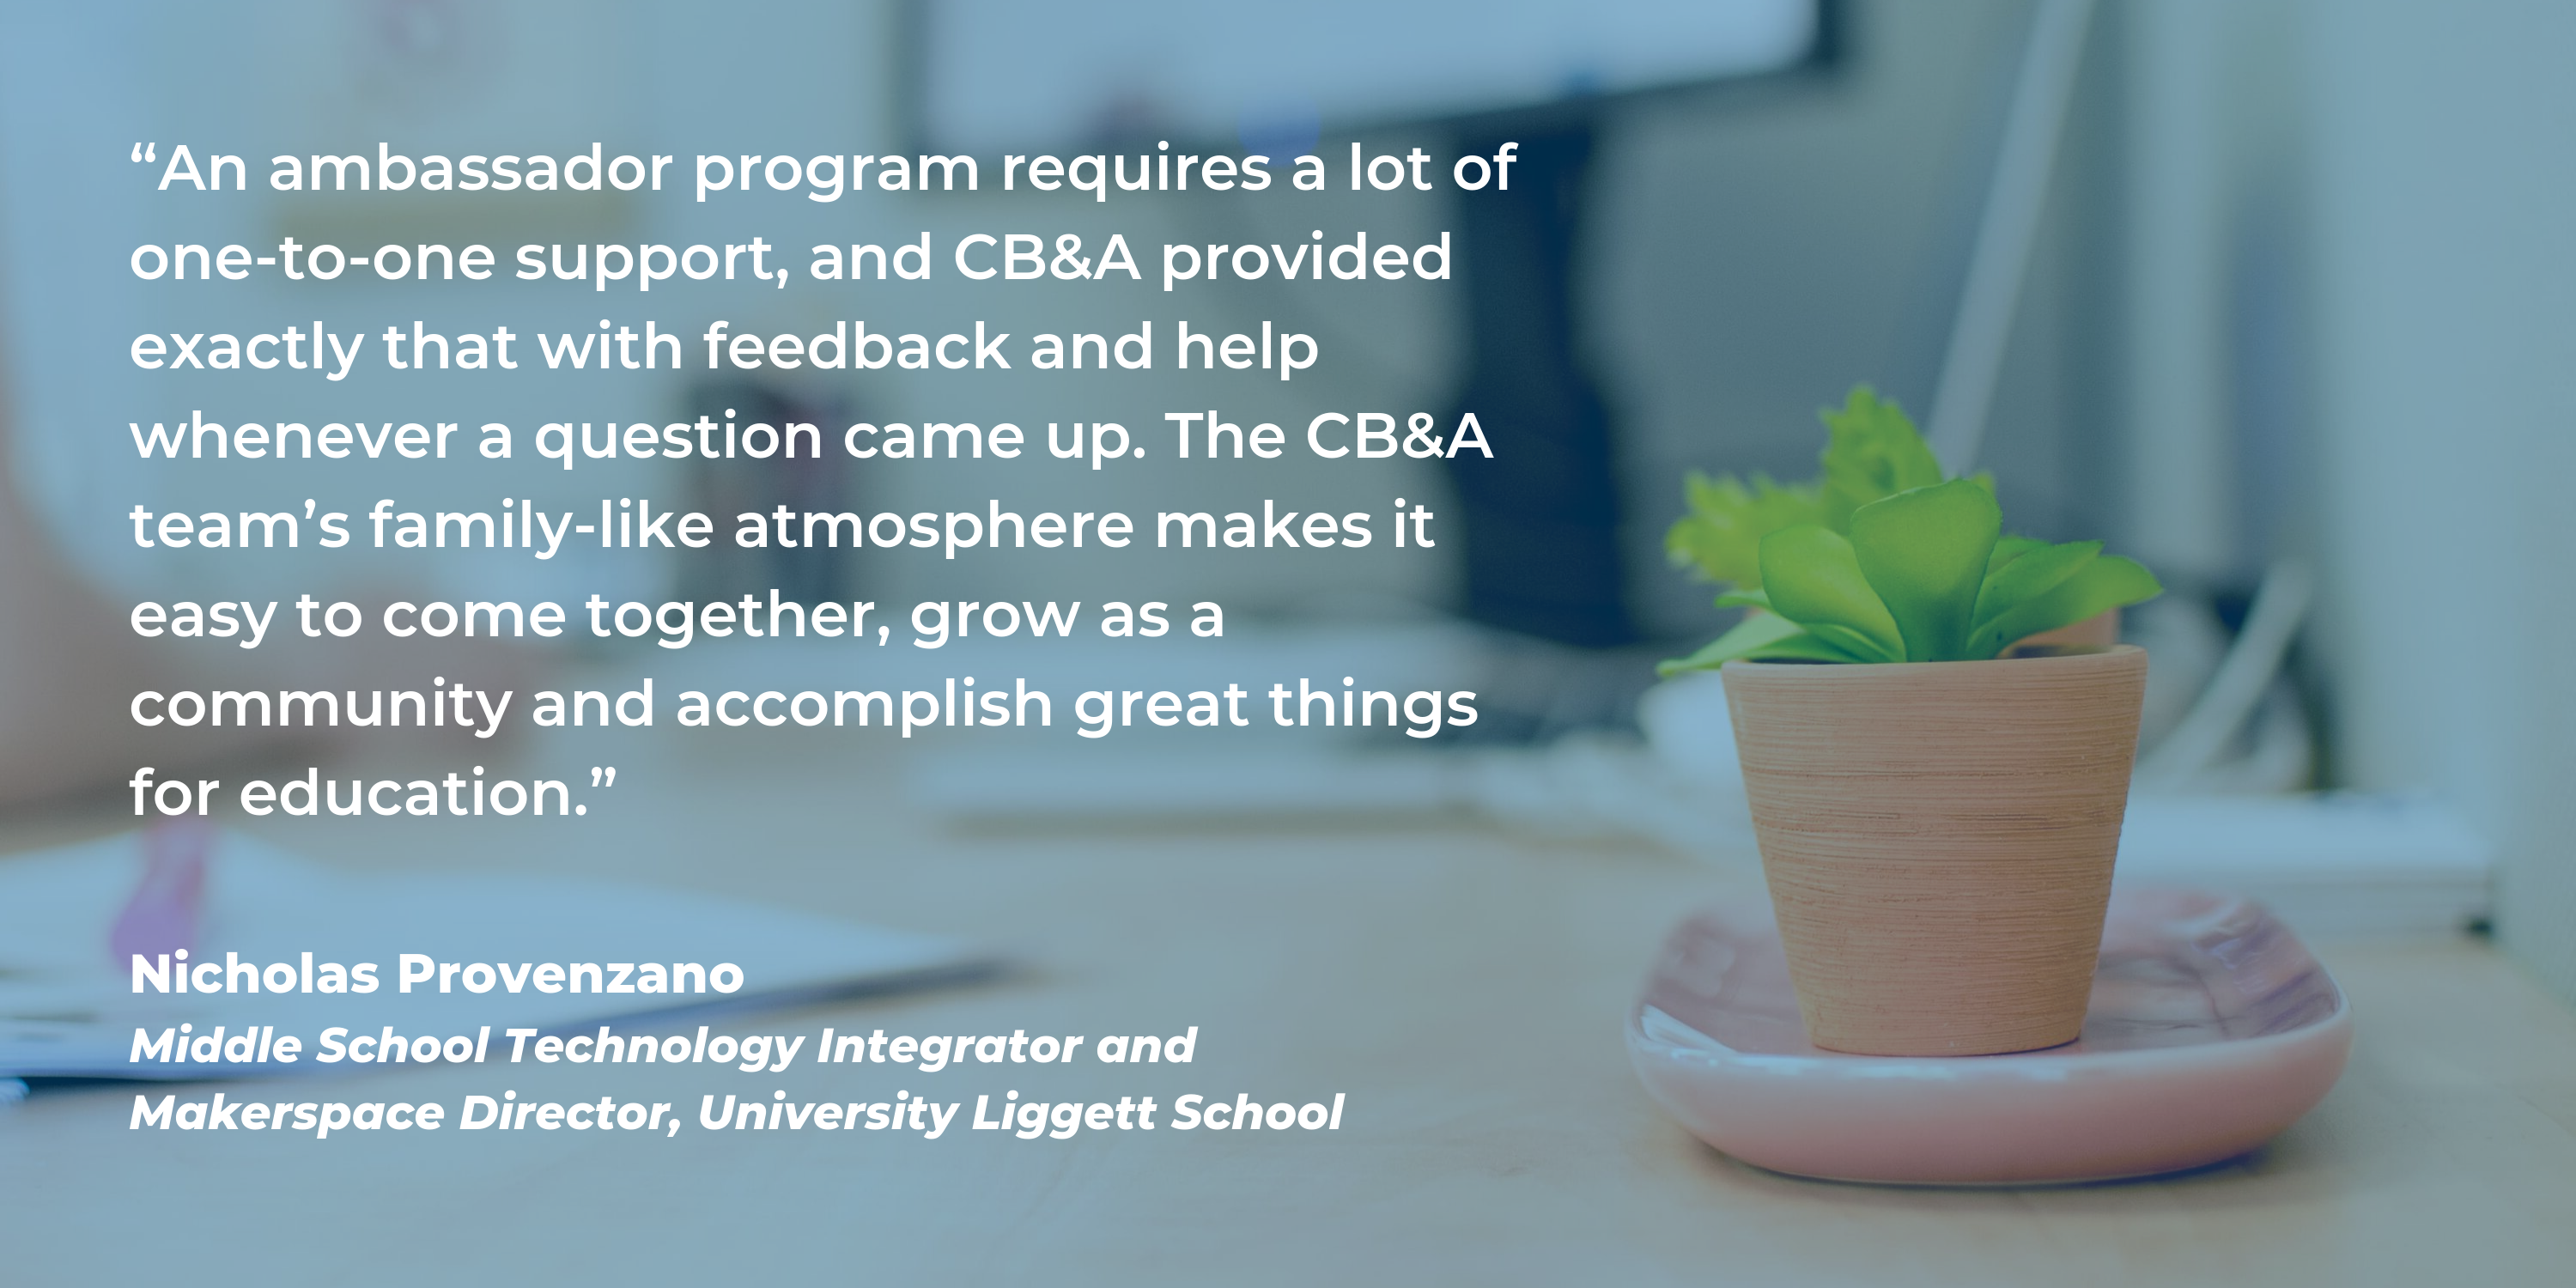 Middle School Technology Integrator and Makerspace Director at University Liggett School, Nicholas Provenzano, shares that ambassador programs require one-to-one support